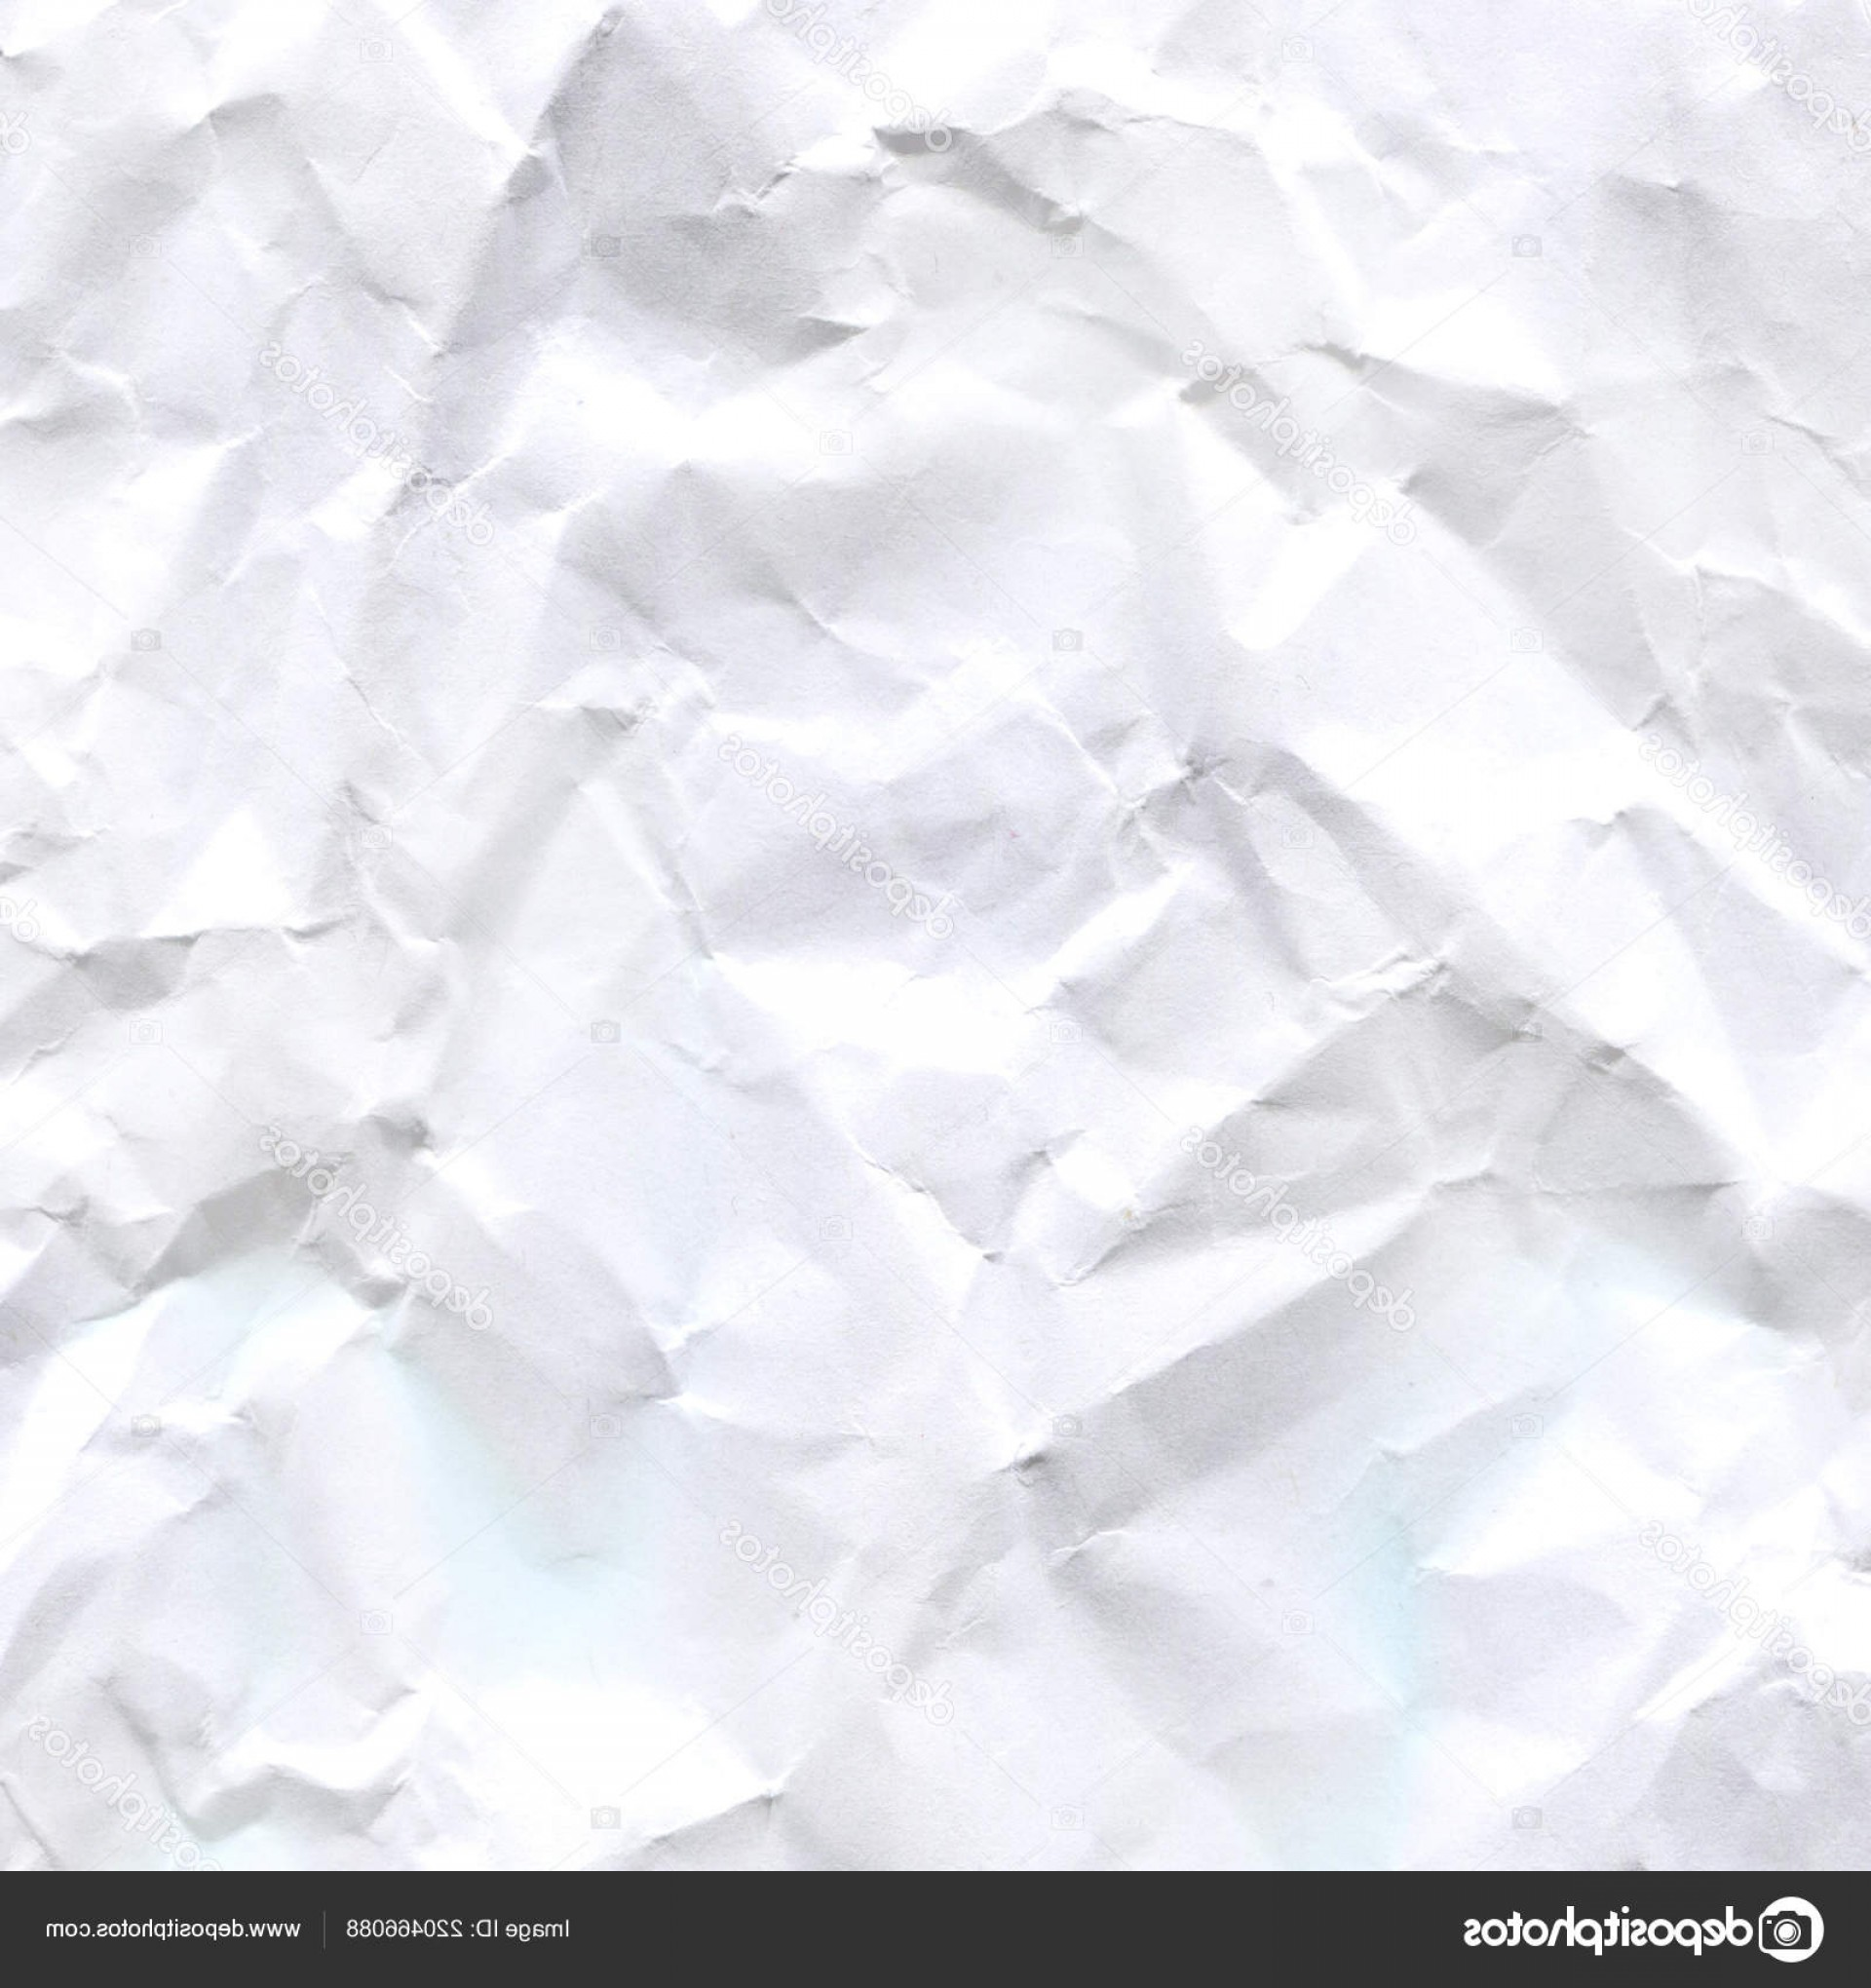 Crinkled Paper Vector: Stock Photo Wrinkled Crumpled Paper Texture Background